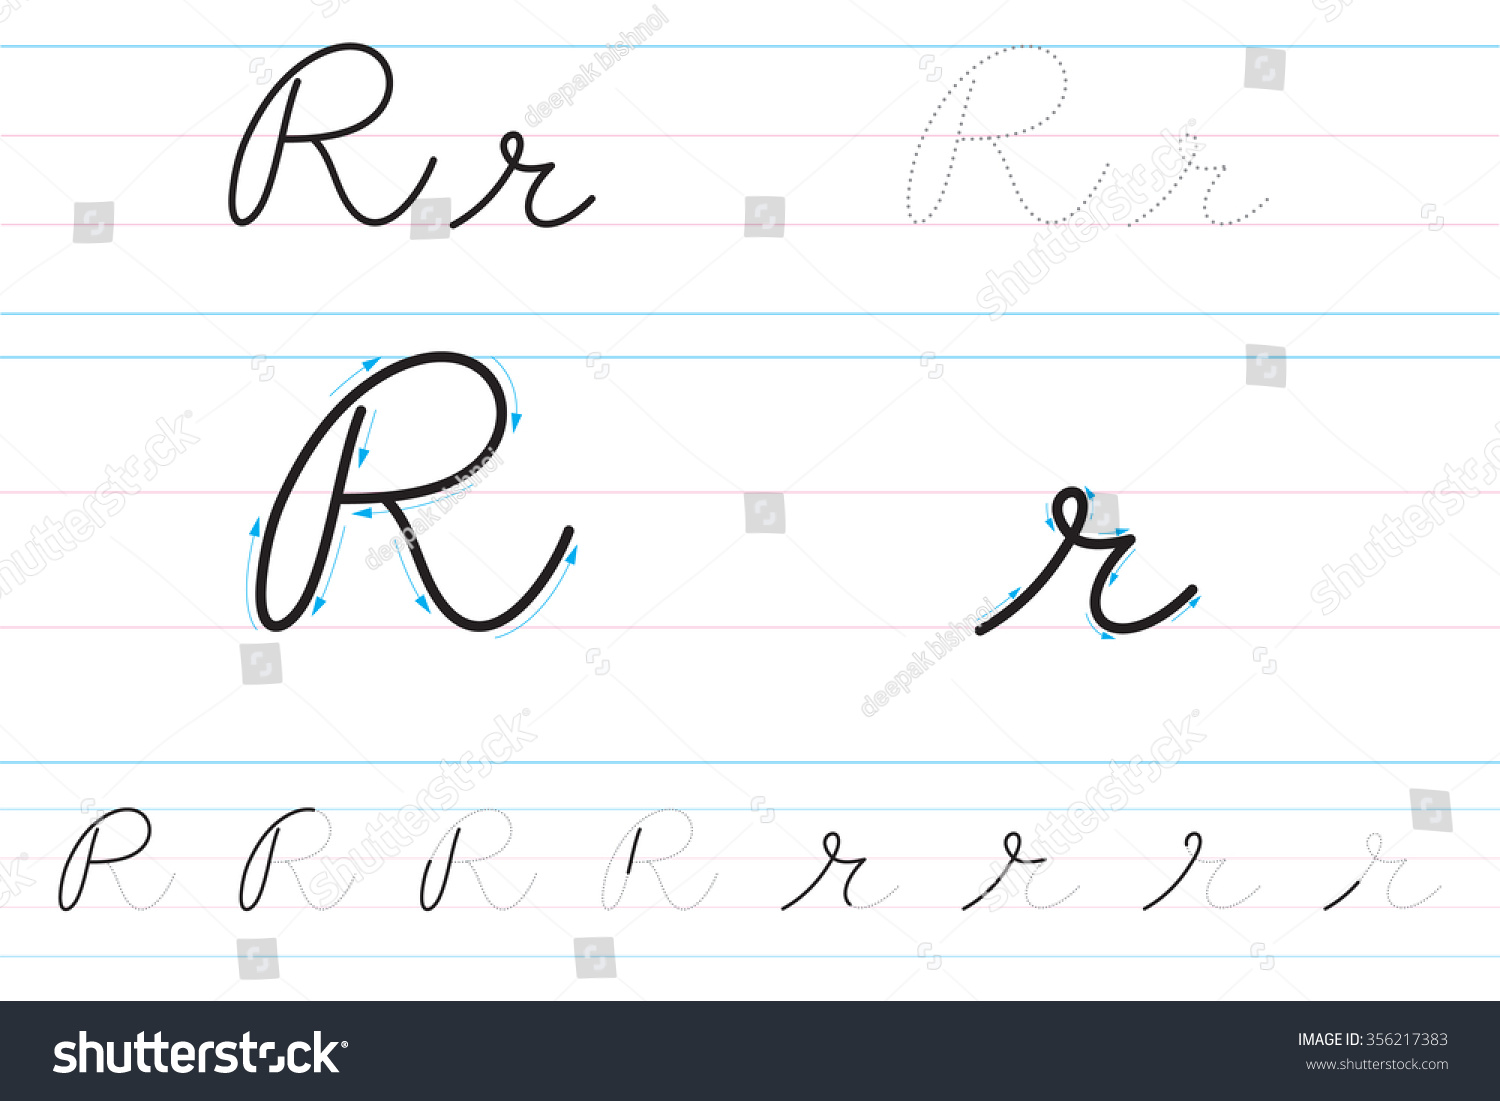 learning to write cursive These free handwriting fonts for teachers mimic lettering used to teach print and cursive handwriting skills some are dashed fonts so that it's easy to trace over them to learn the movements required to form the letters.